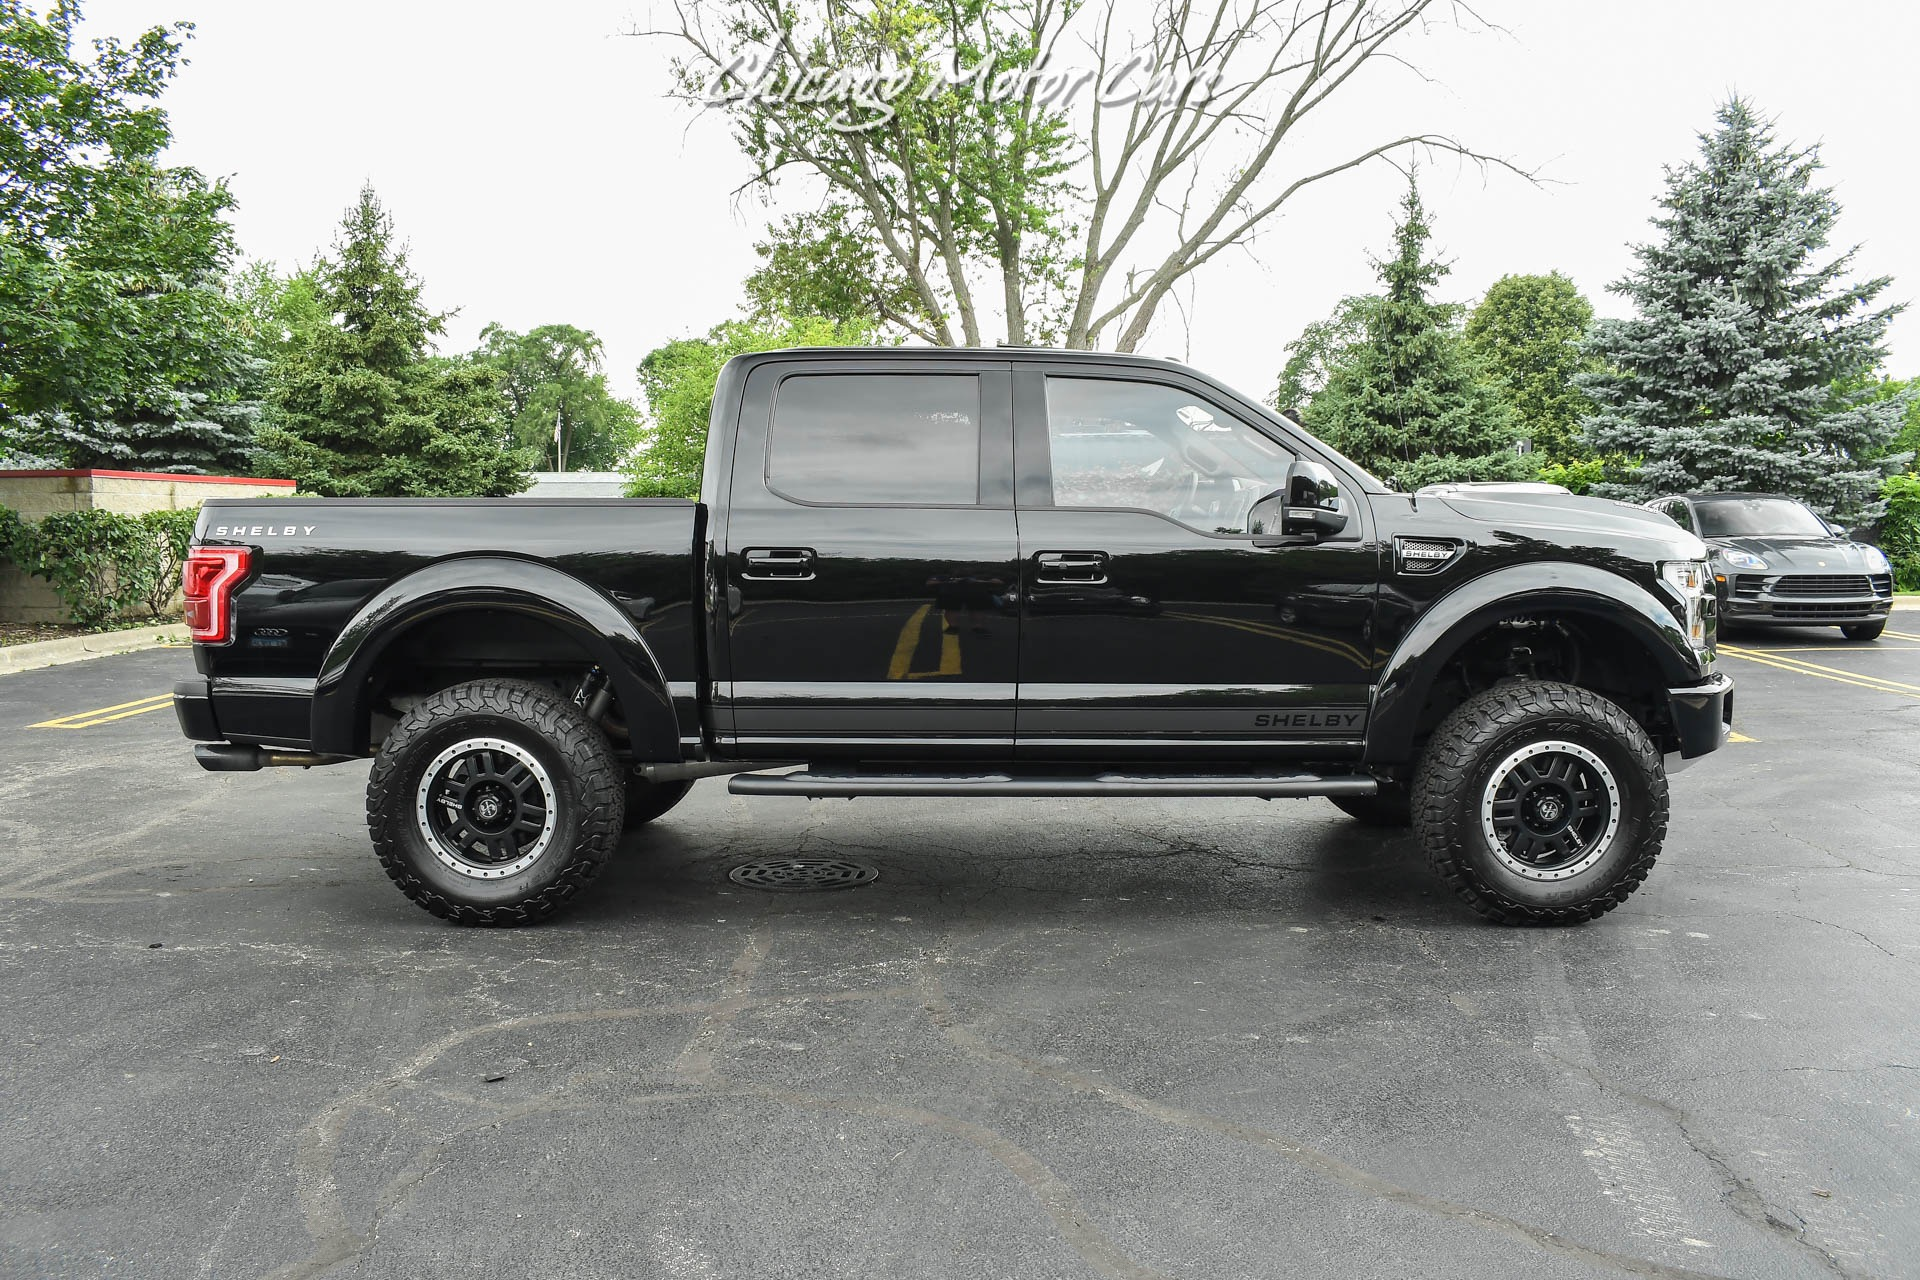 Used-2016-Ford-F150-SHELBY-4x4-Super-Crew-Pick-Up-Truck-700HP-50L-SUPERCHARGED-V8-RARE